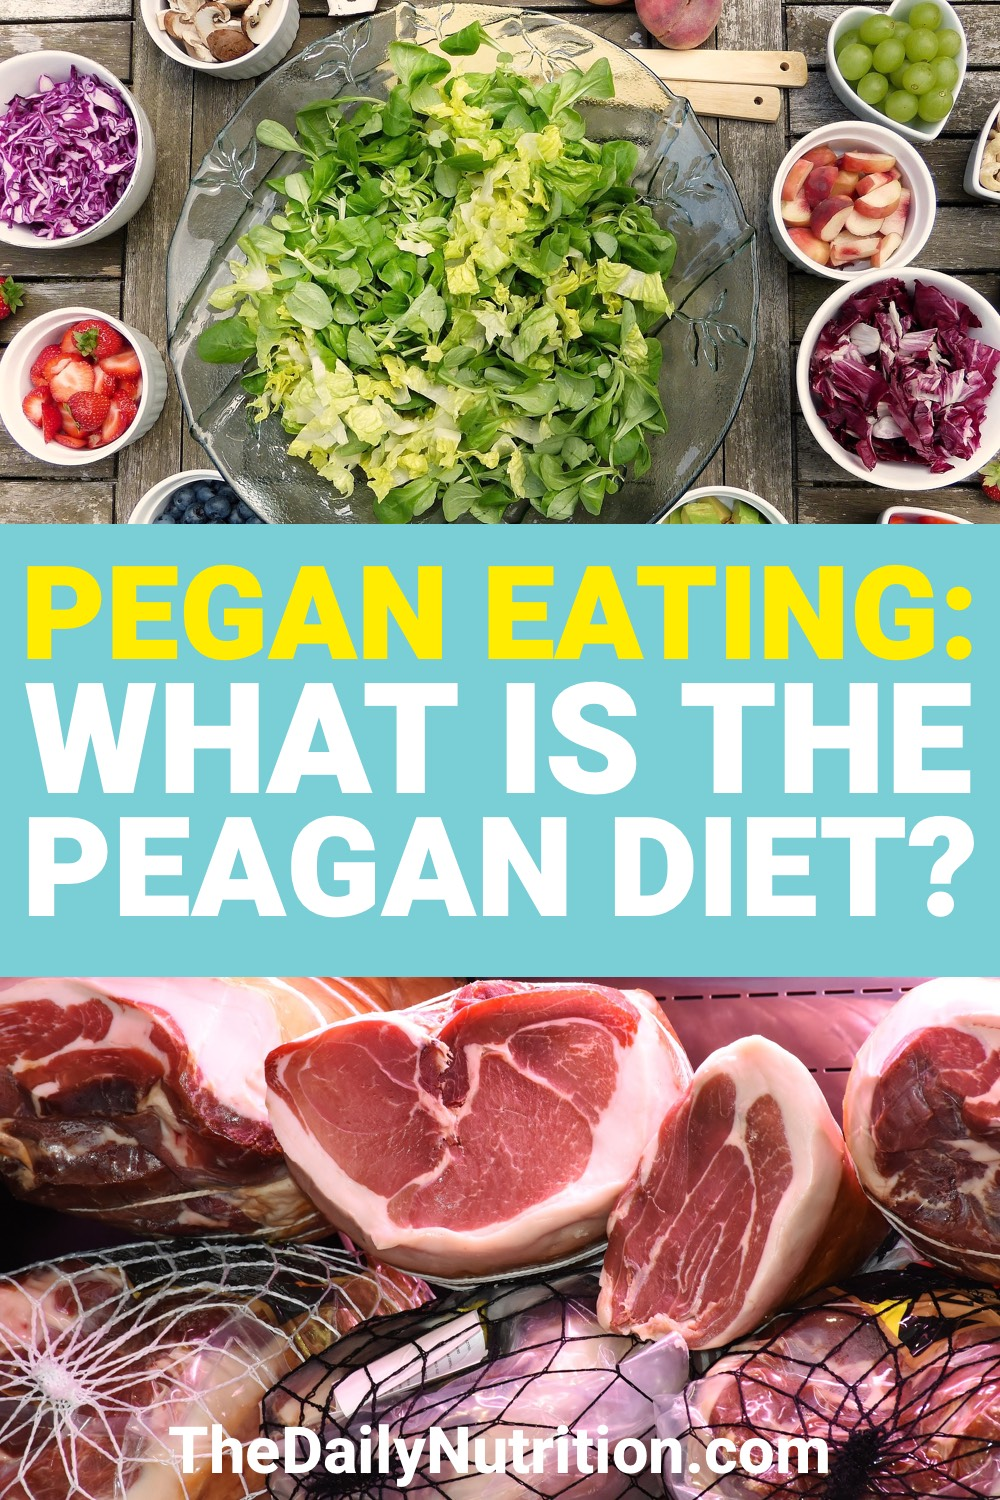 The plan diet is a lifestyle change that will greatly improve your health. But what is the Pegan Diet? Find out here.